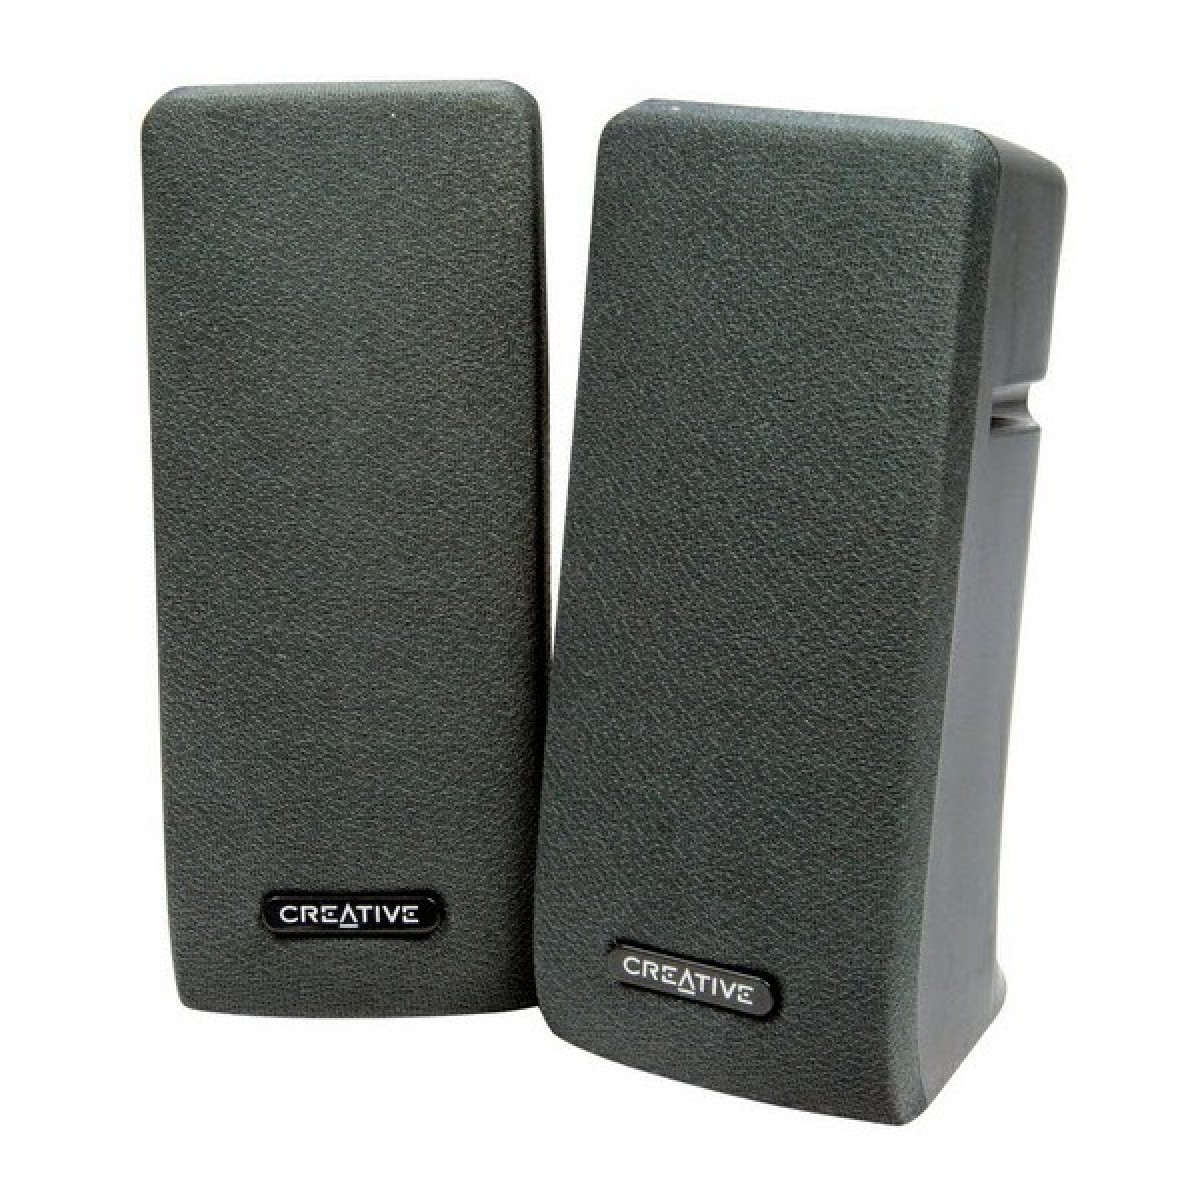 Creative A35 2.0 Speaker System